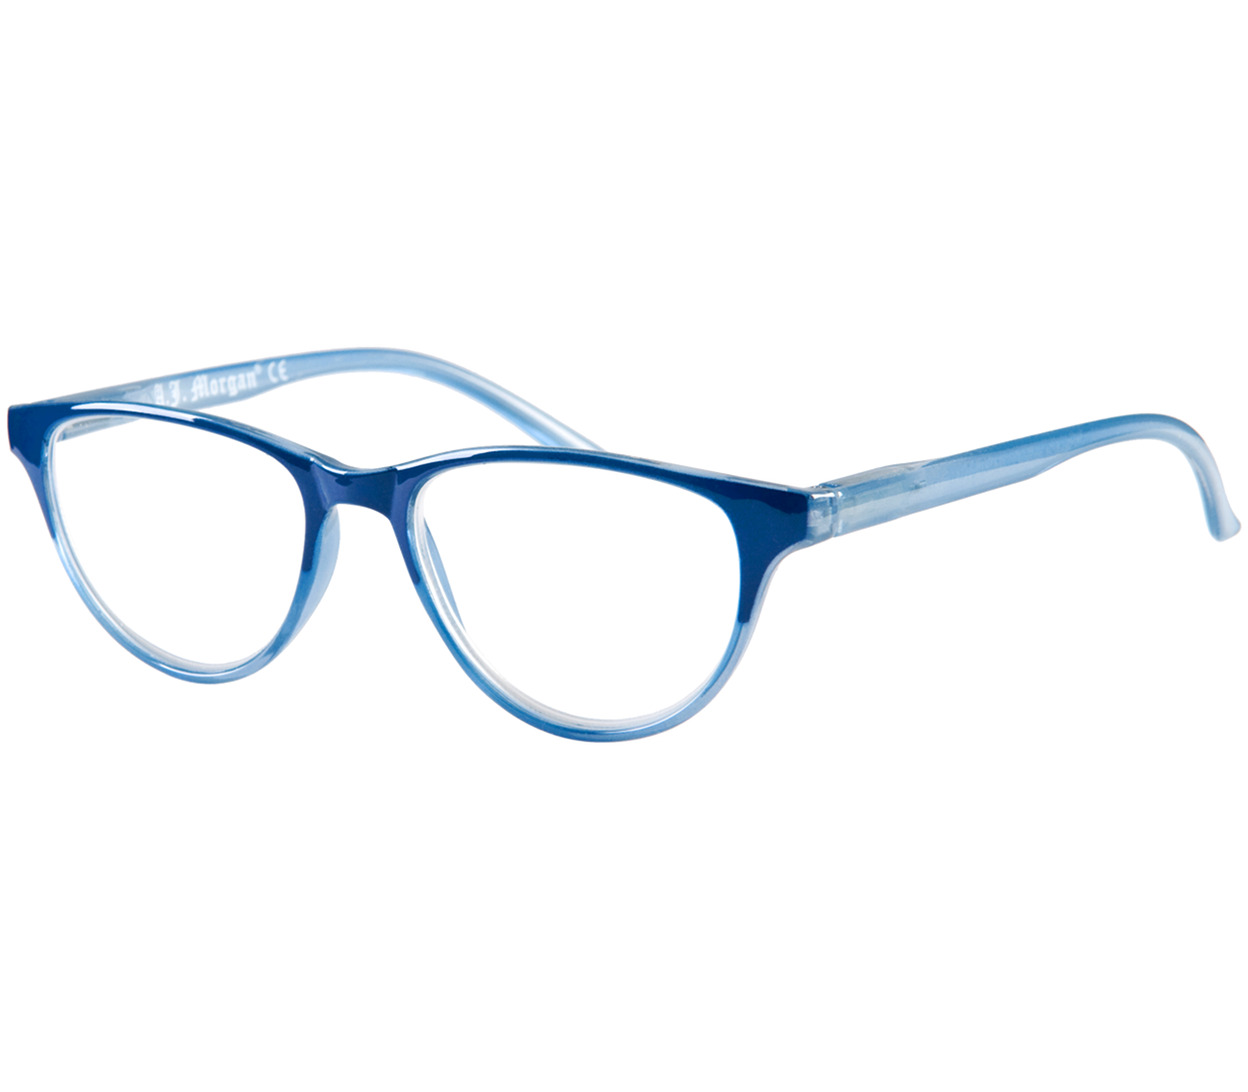 Main Image (Angle) - Madeline (Blue) Fashion Reading Glasses